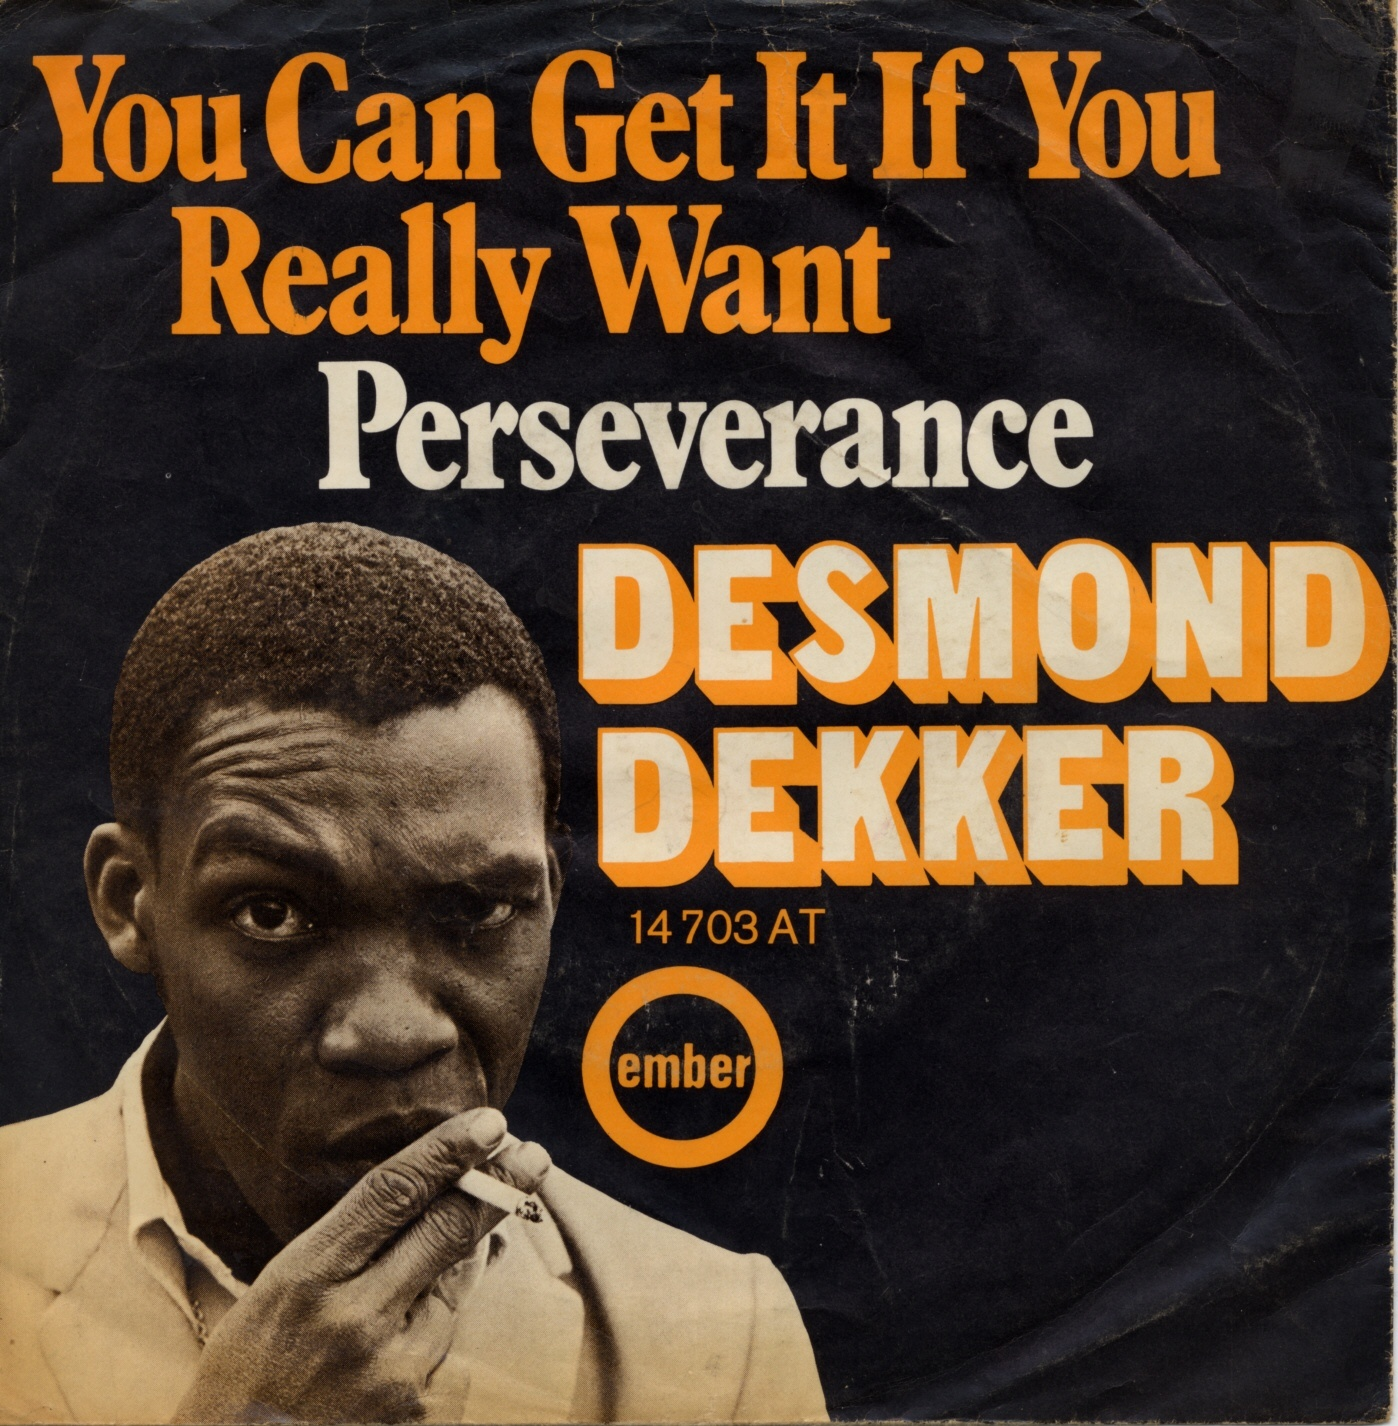 You can get it if you really want (Foto: Desmond Dekker)